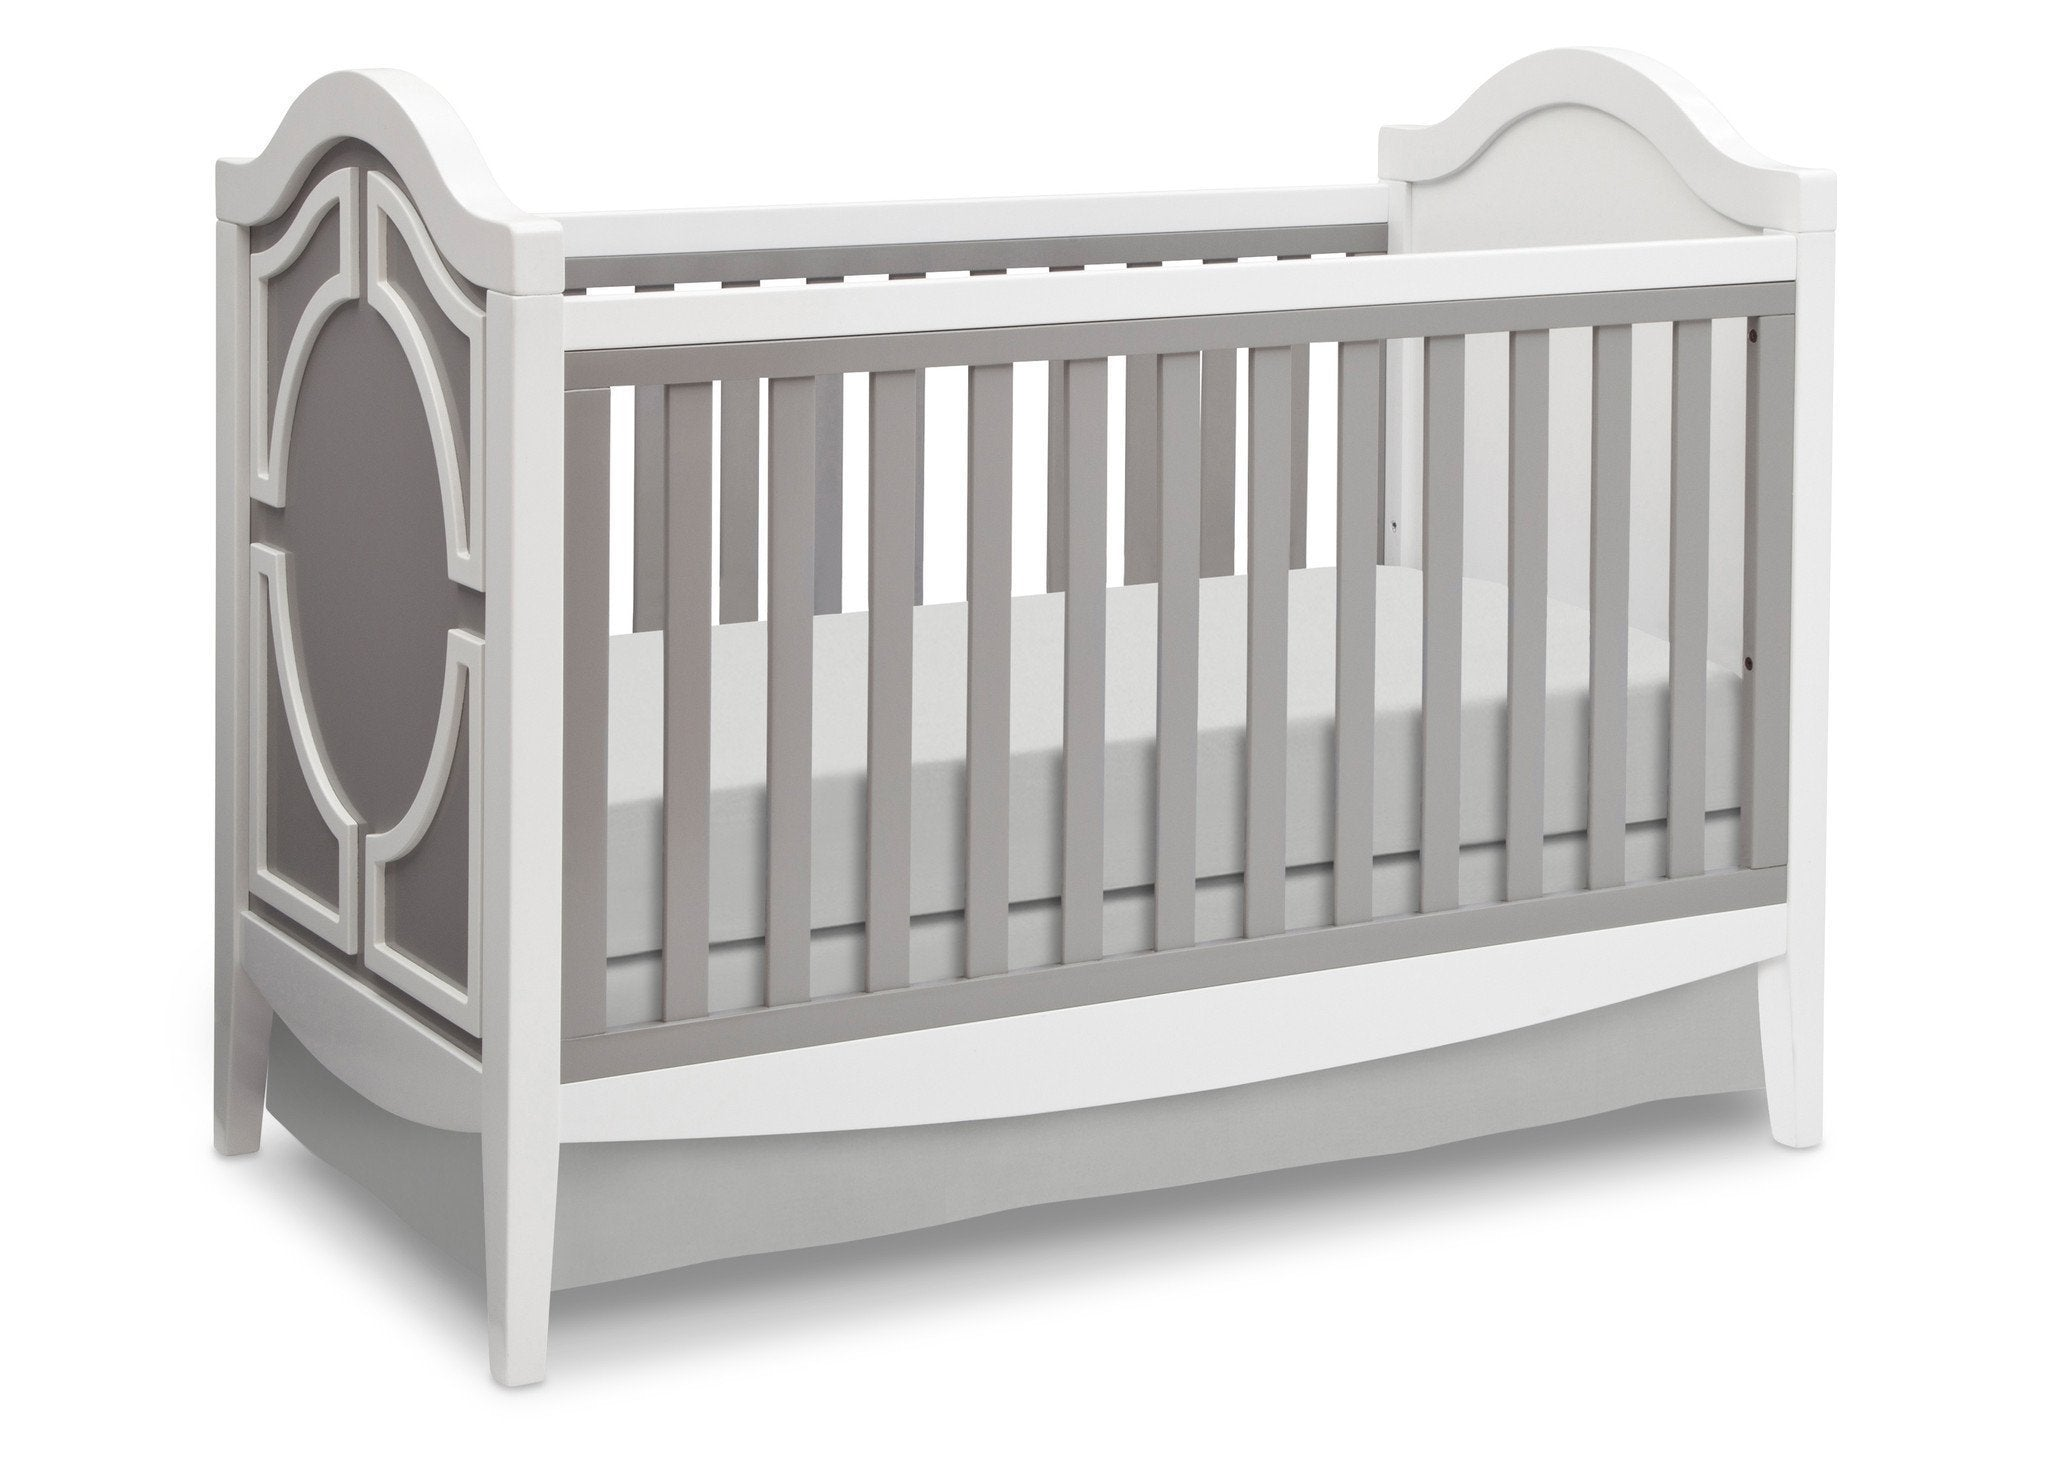 Simmons Kids Antique White/Grey (066) Hollywood 3-in-1 Crib, Crib Conversion a3a